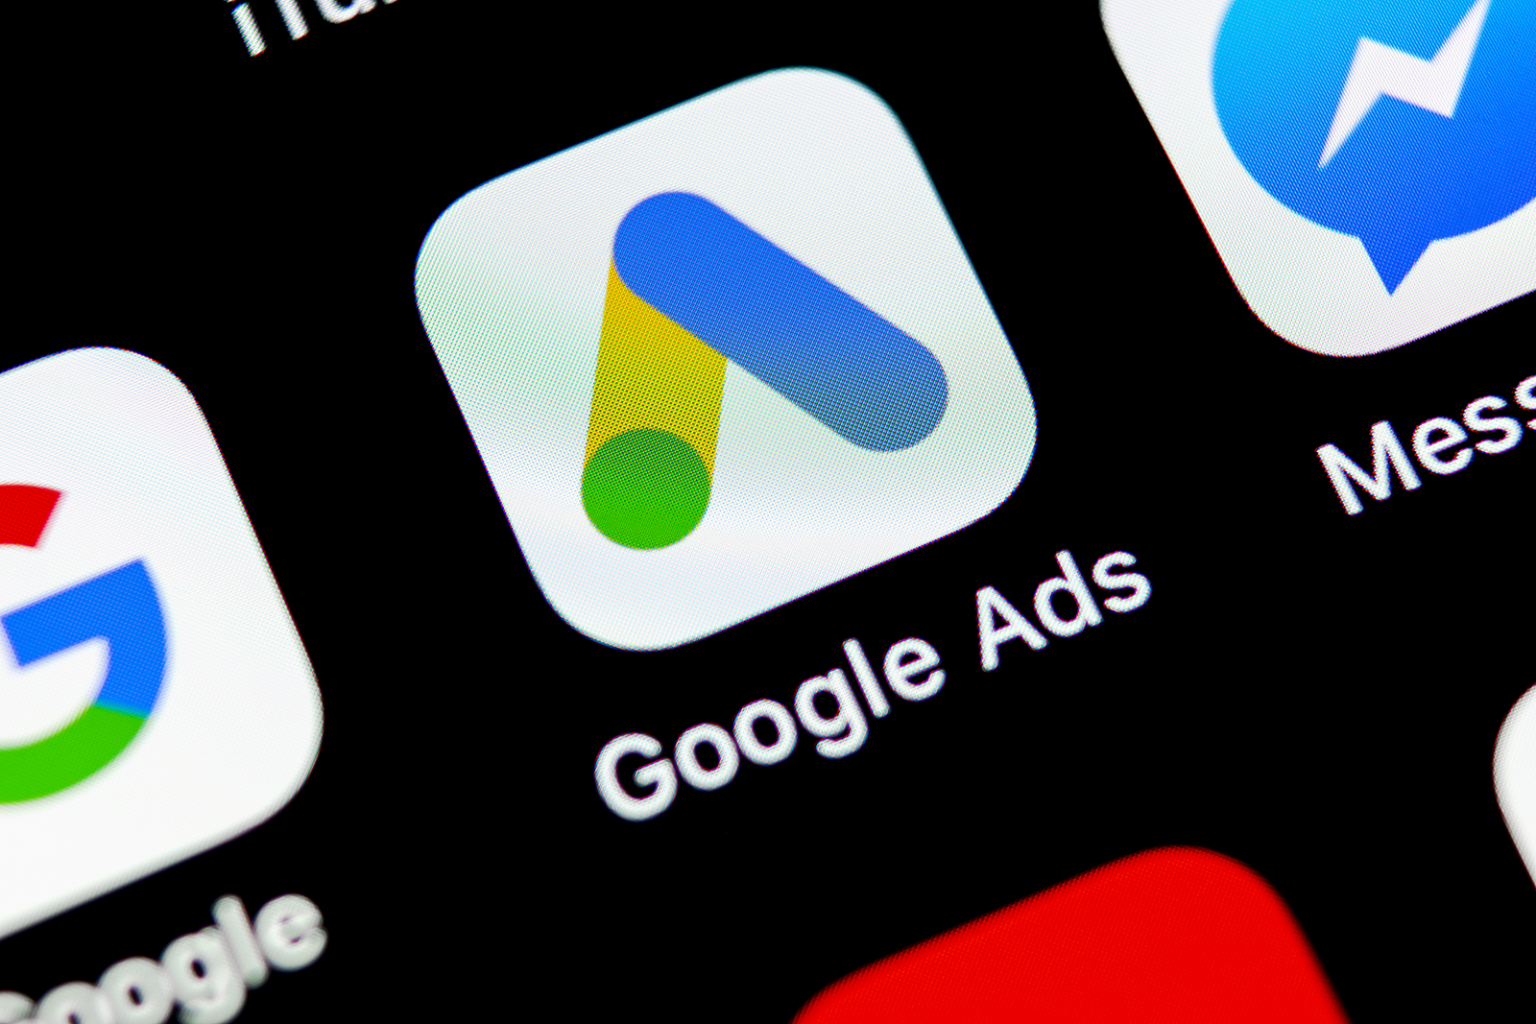 The Google Ads app icon on a phone background.